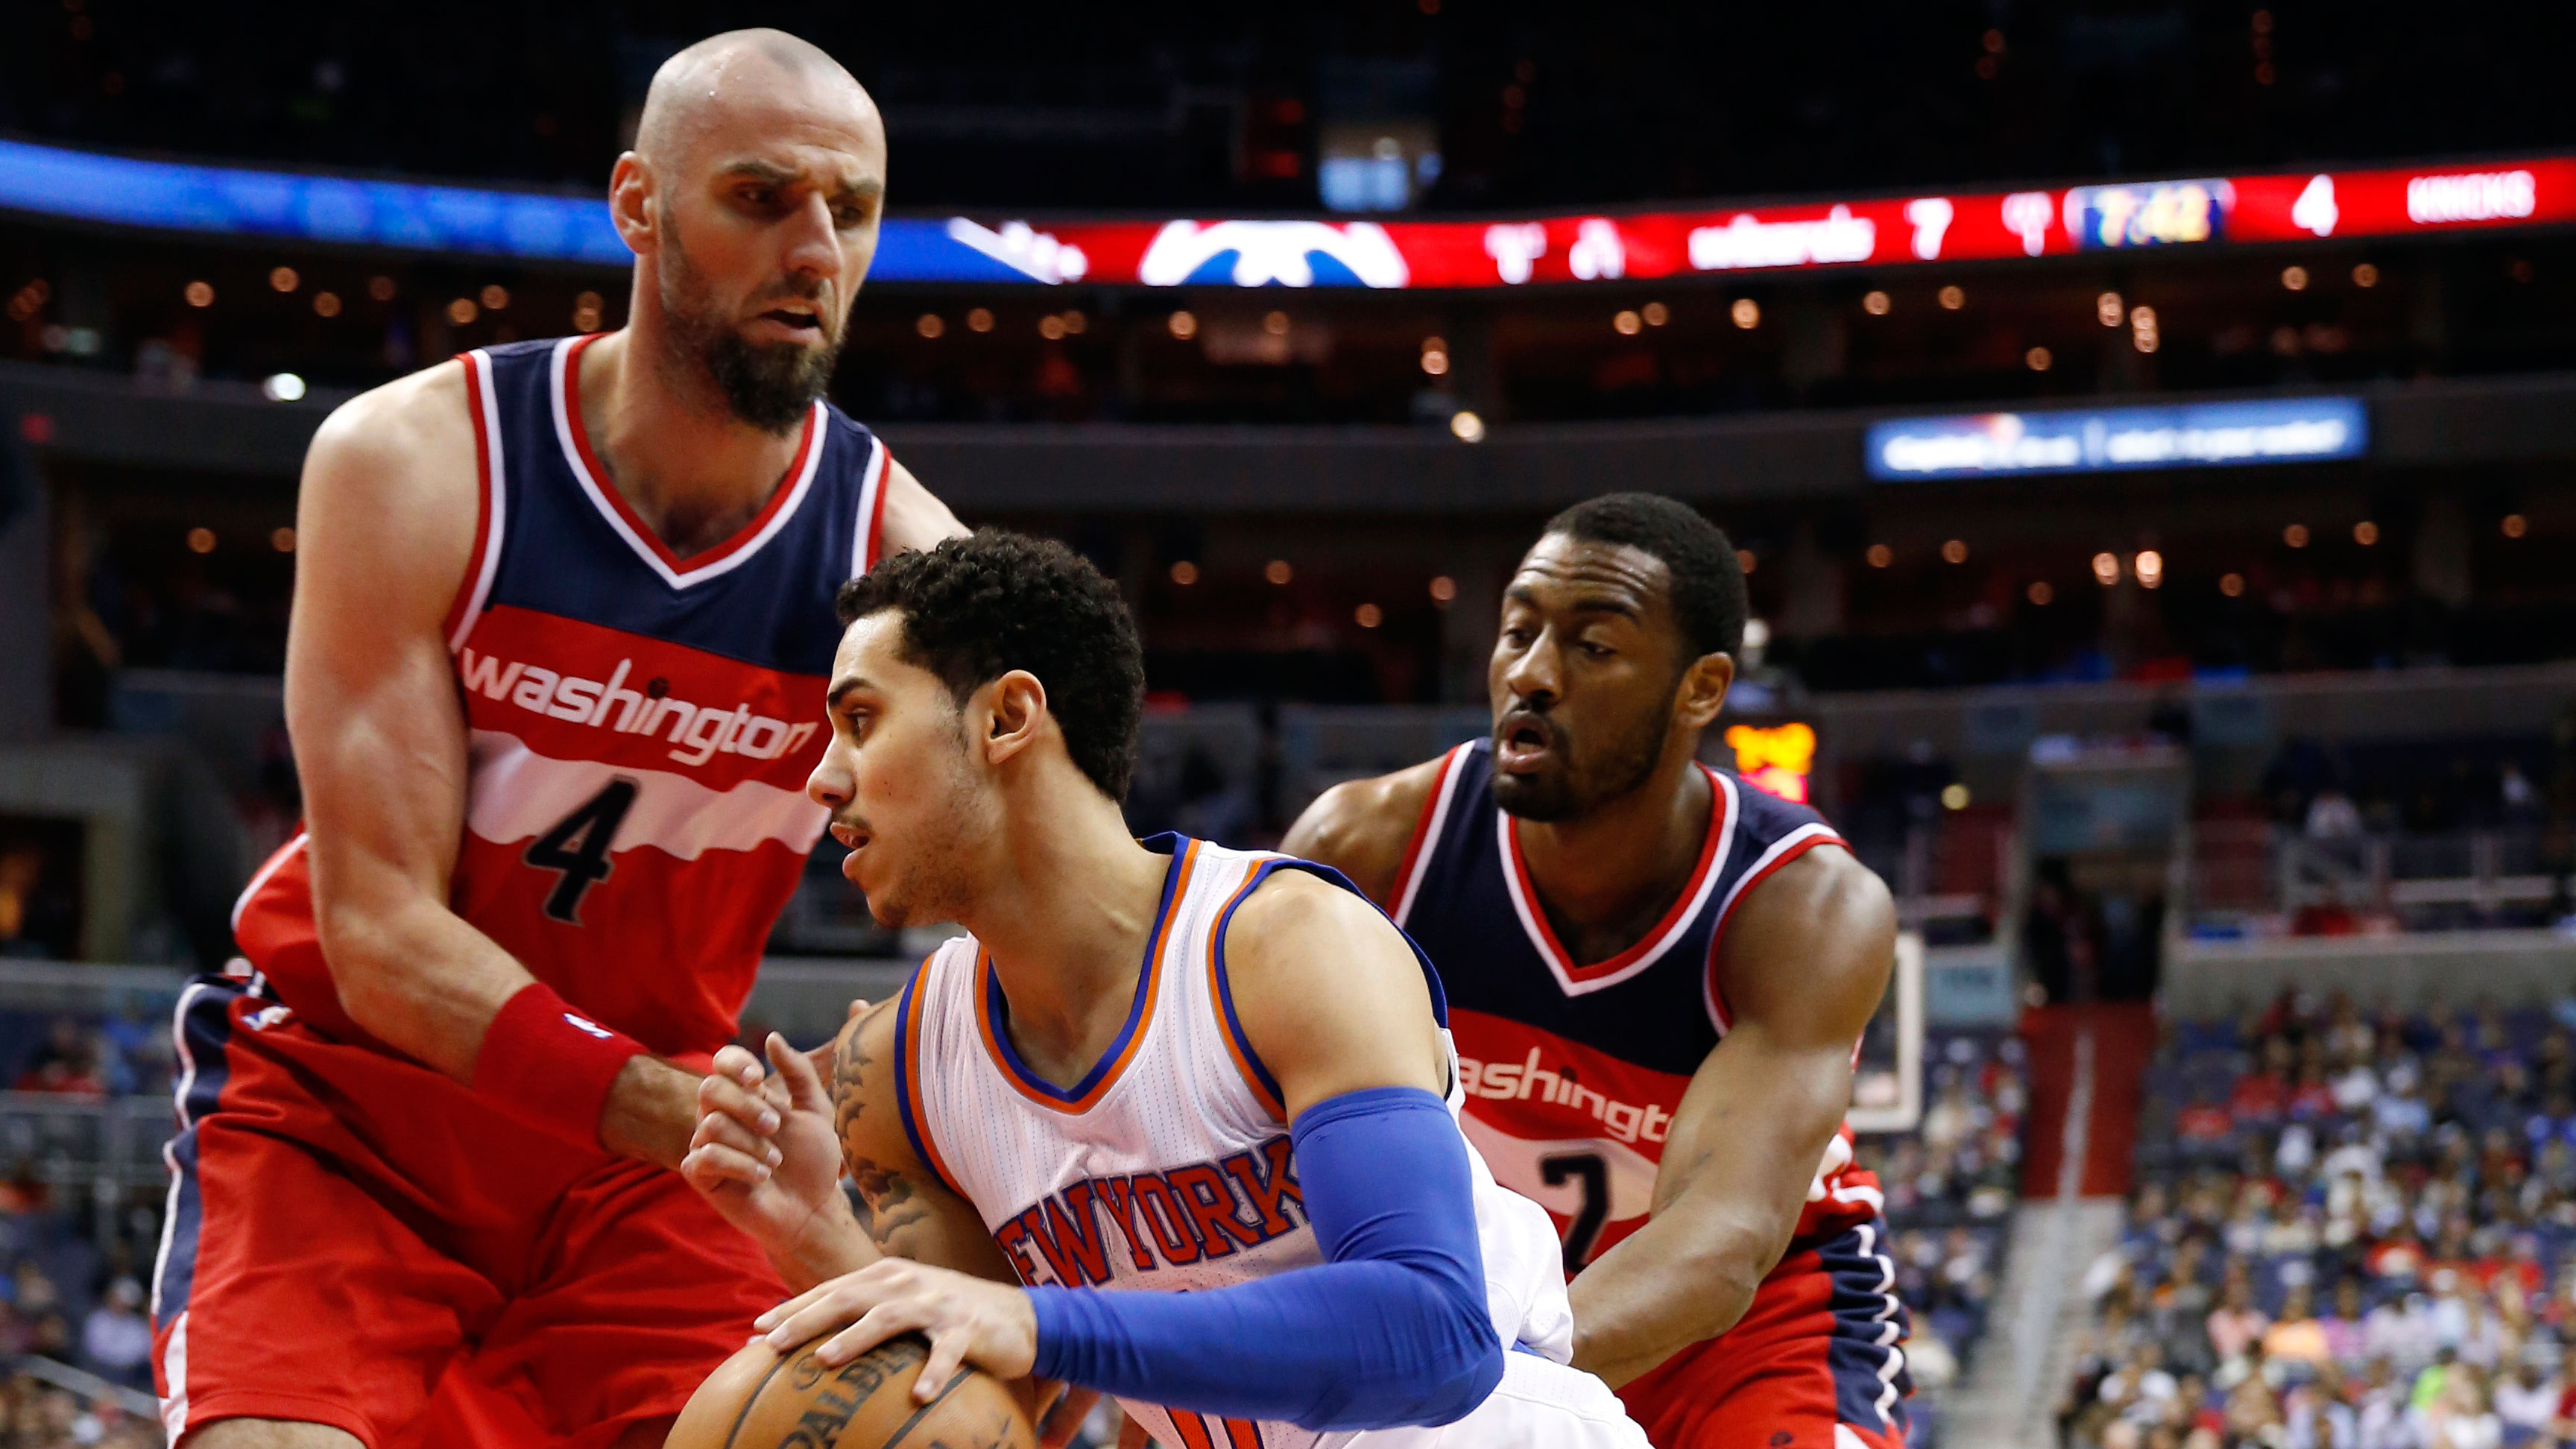 447a28a9b2e8 Gortat powers Wizards to win over Knicks - Sportsnet.ca